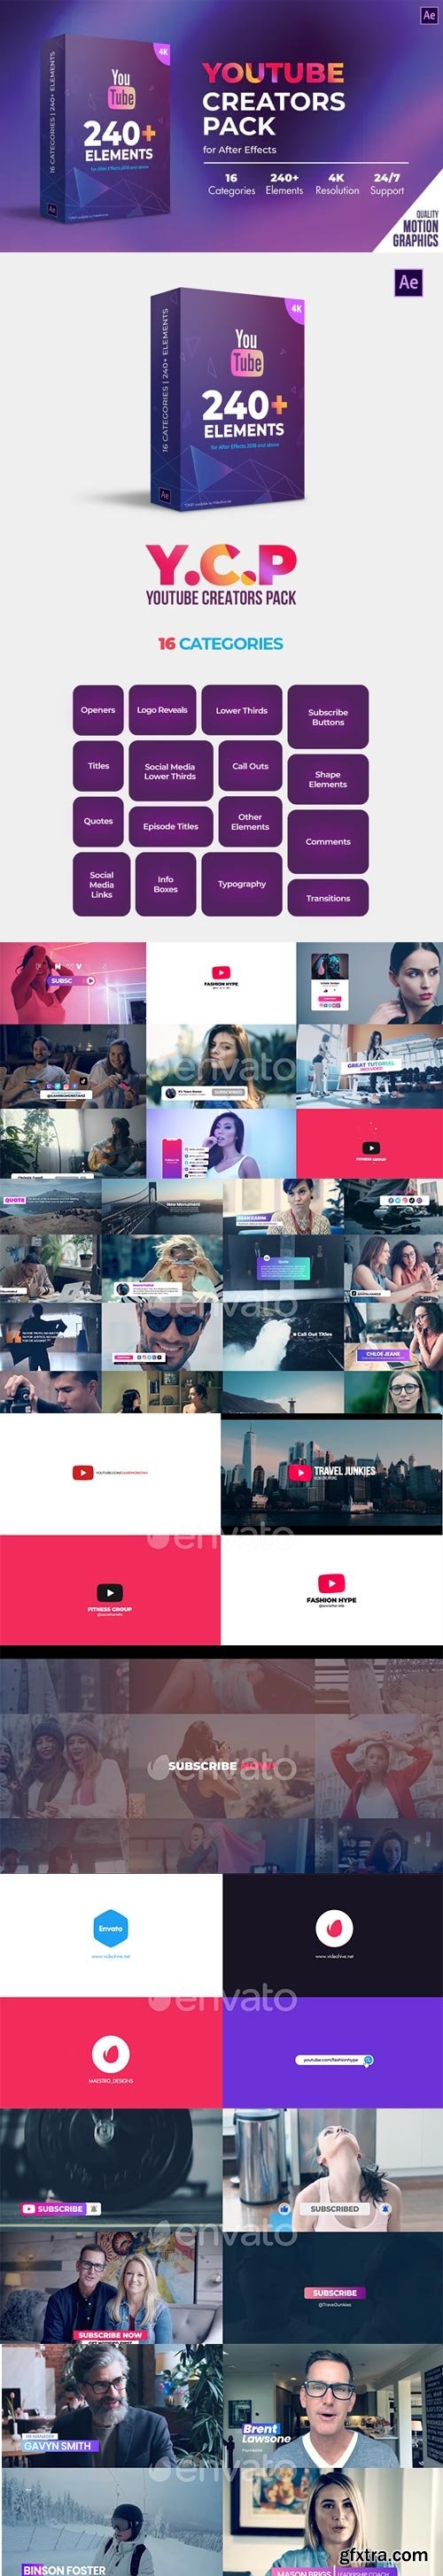 Videohive - Youtube Creators Pack - 31232789